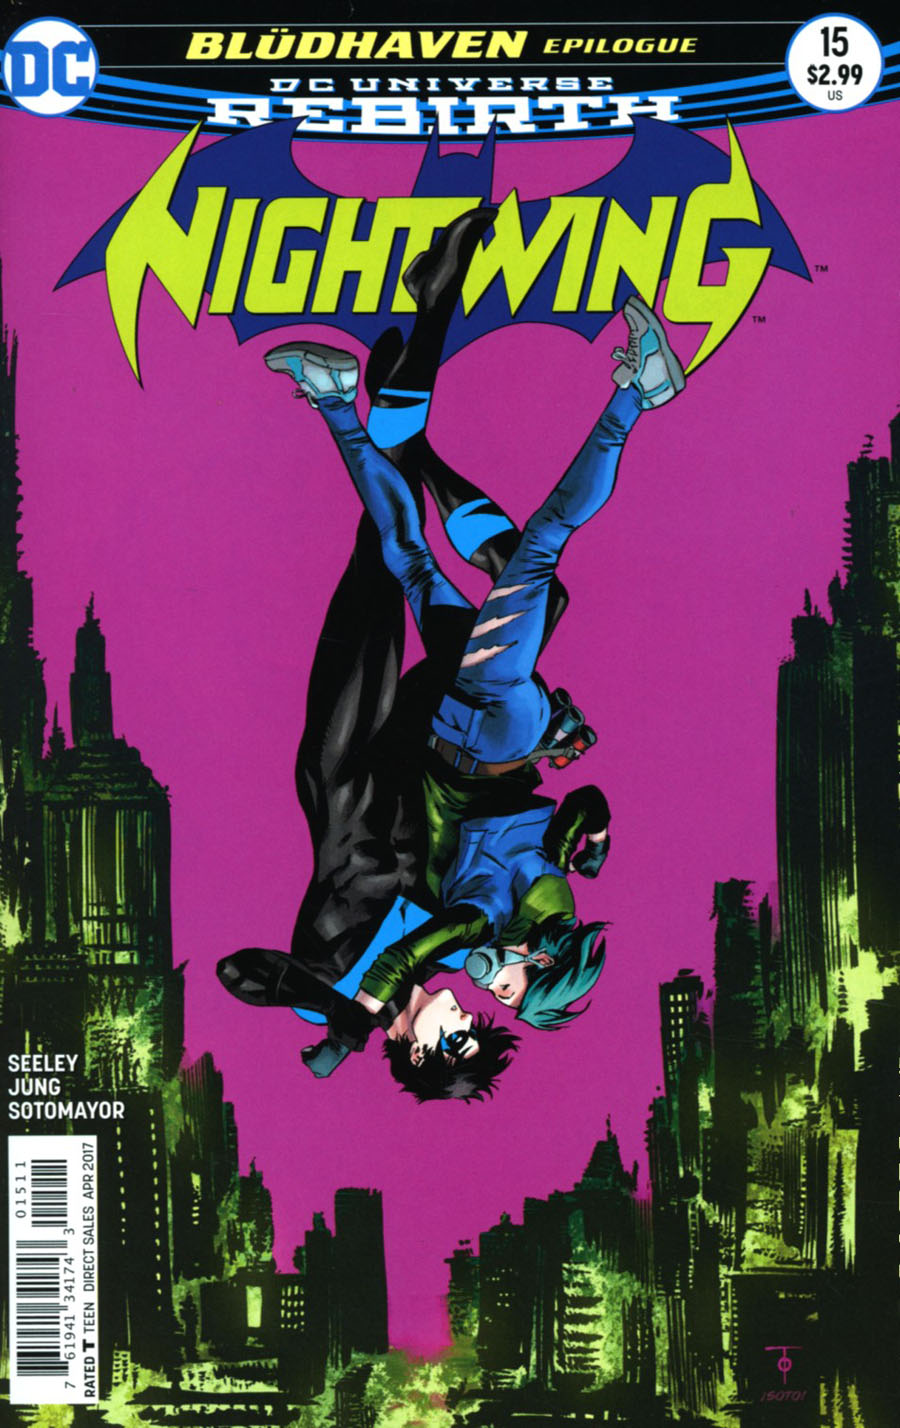 Nightwing Vol 4 #15 Cover A Regular Marcus To Cover